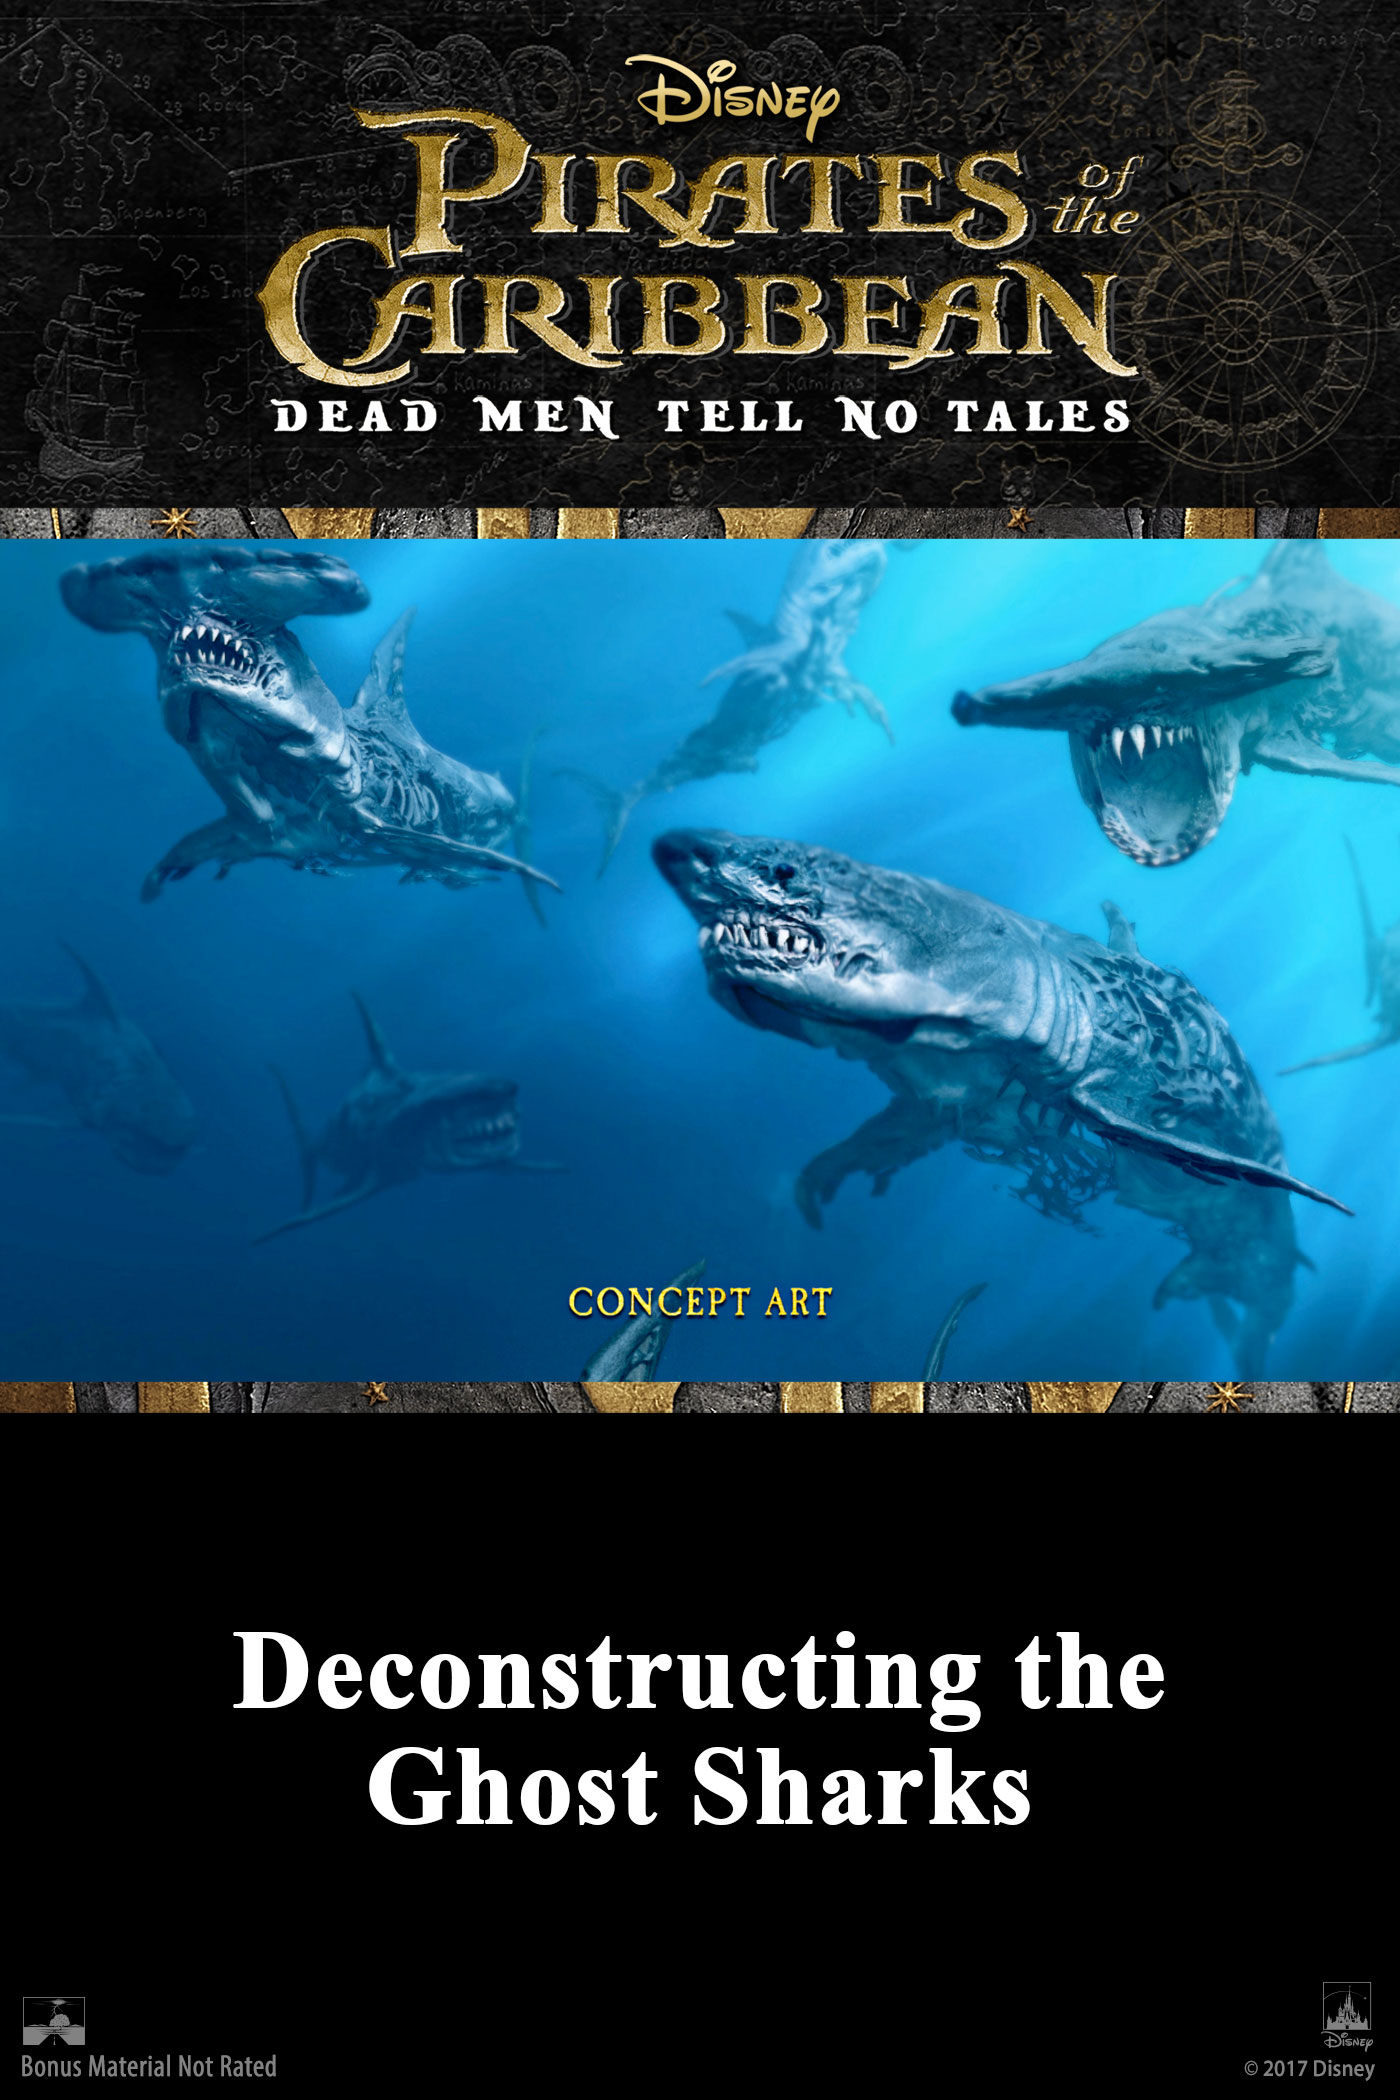 Deconstructing the Ghost Sharks